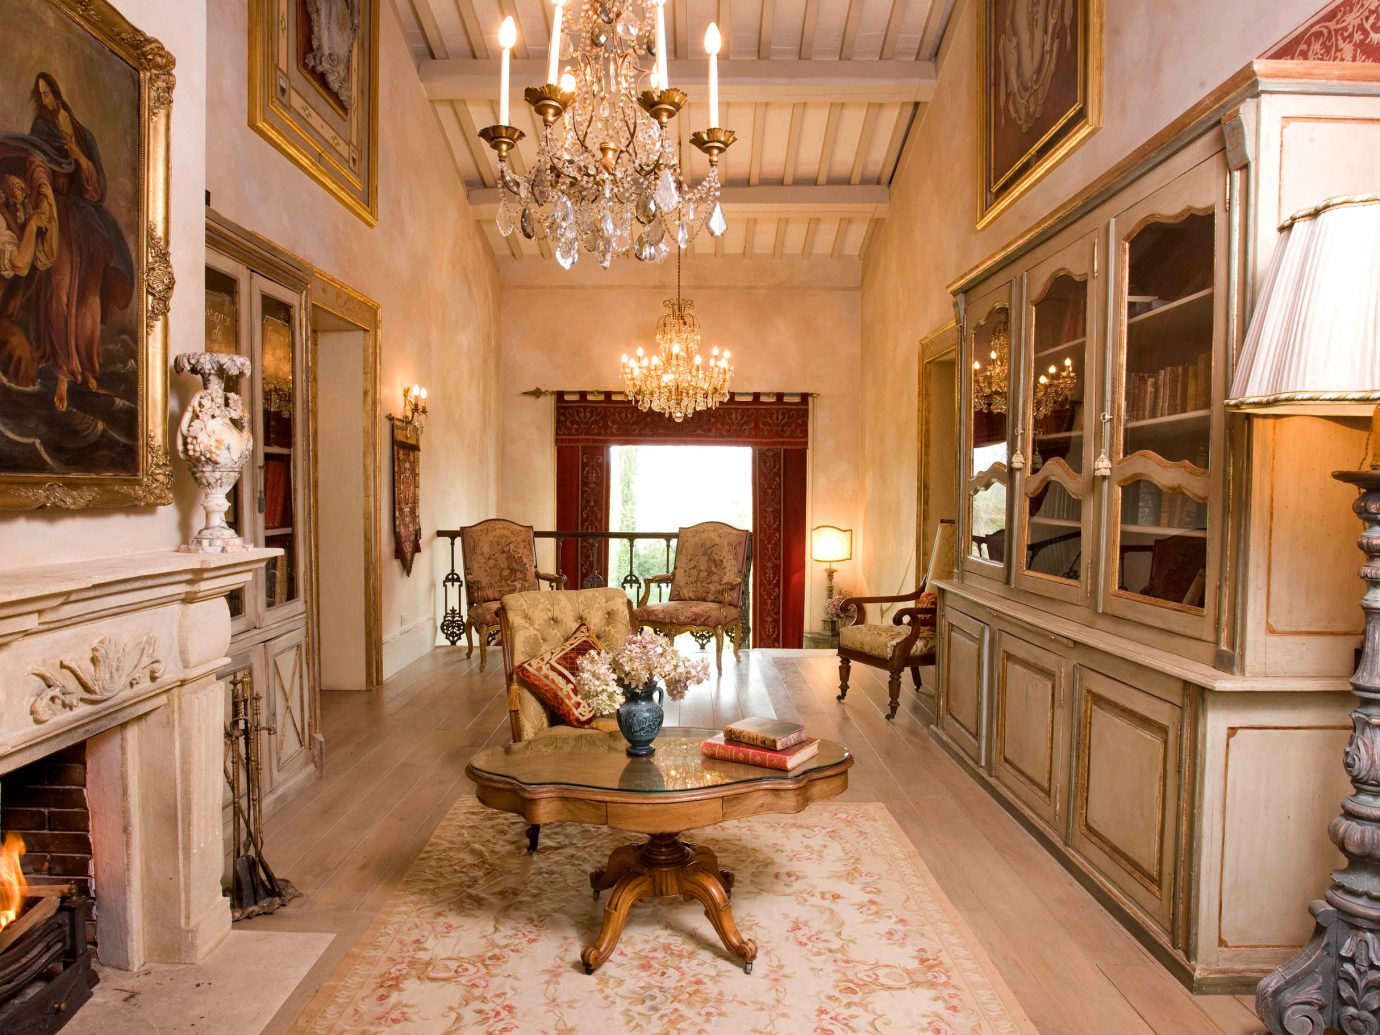 Country Cultural Elegant Historic Hotels Living Lounge Luxury Travel indoor floor room property estate living room mansion home Fireplace interior design Lobby palace decorated furniture stone